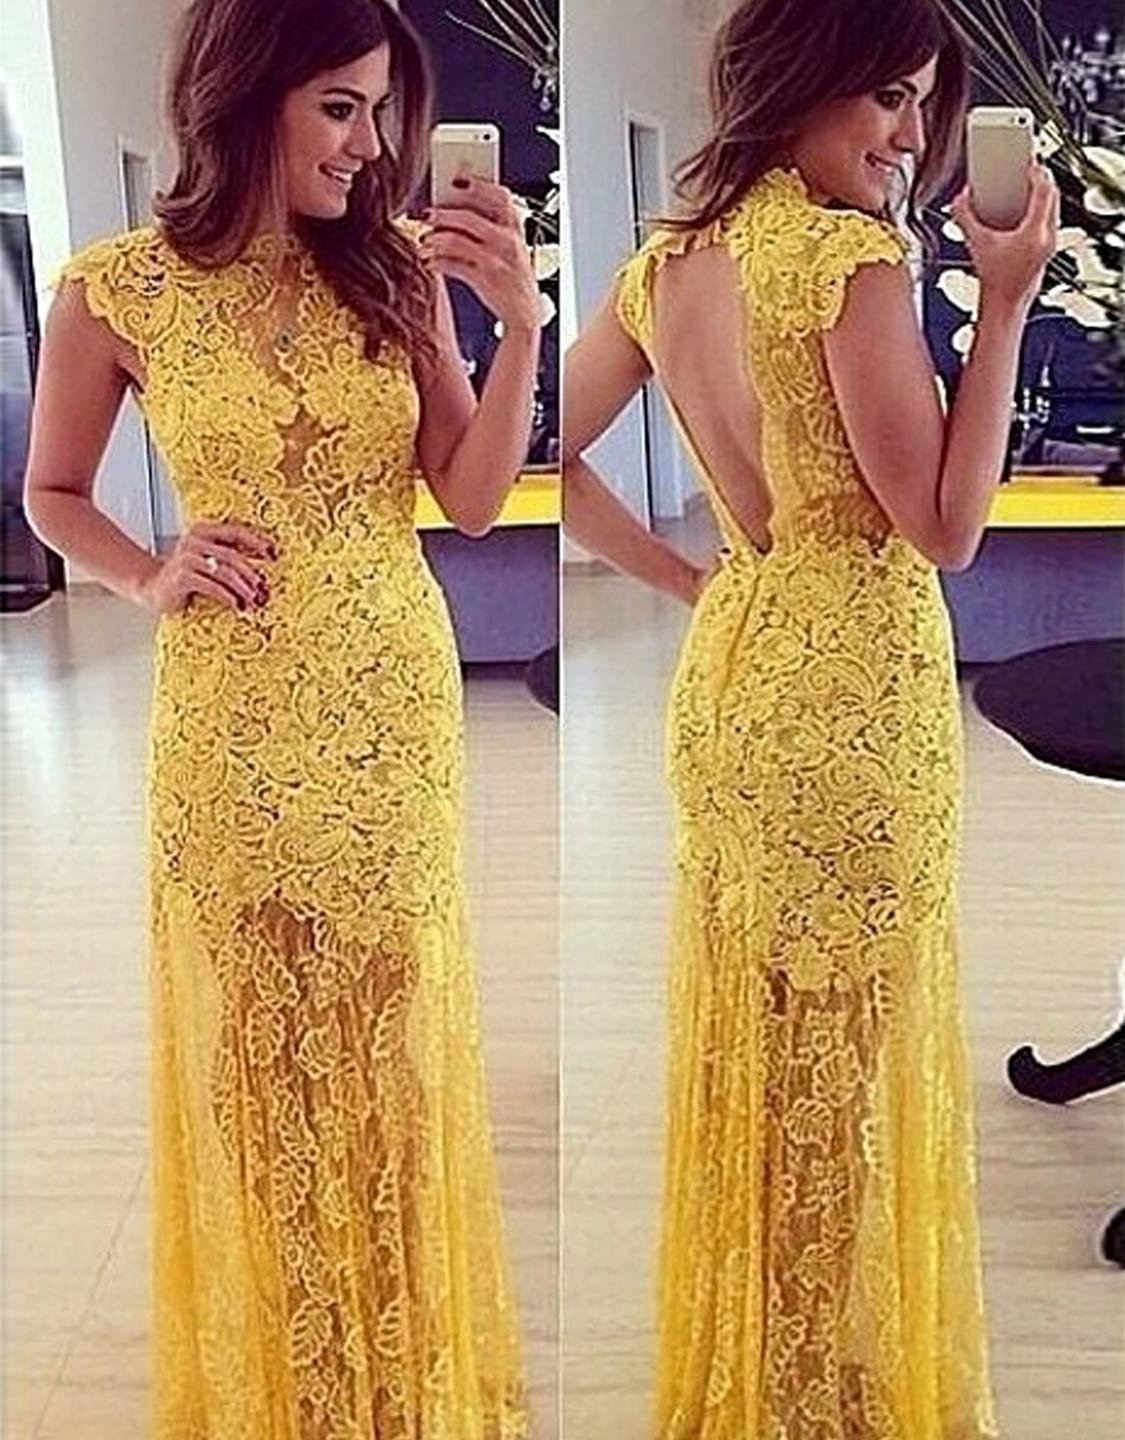 Tulle Lace Transparent S/M/L/XL Size Yellow Prom Long Dress With Open Back W633577